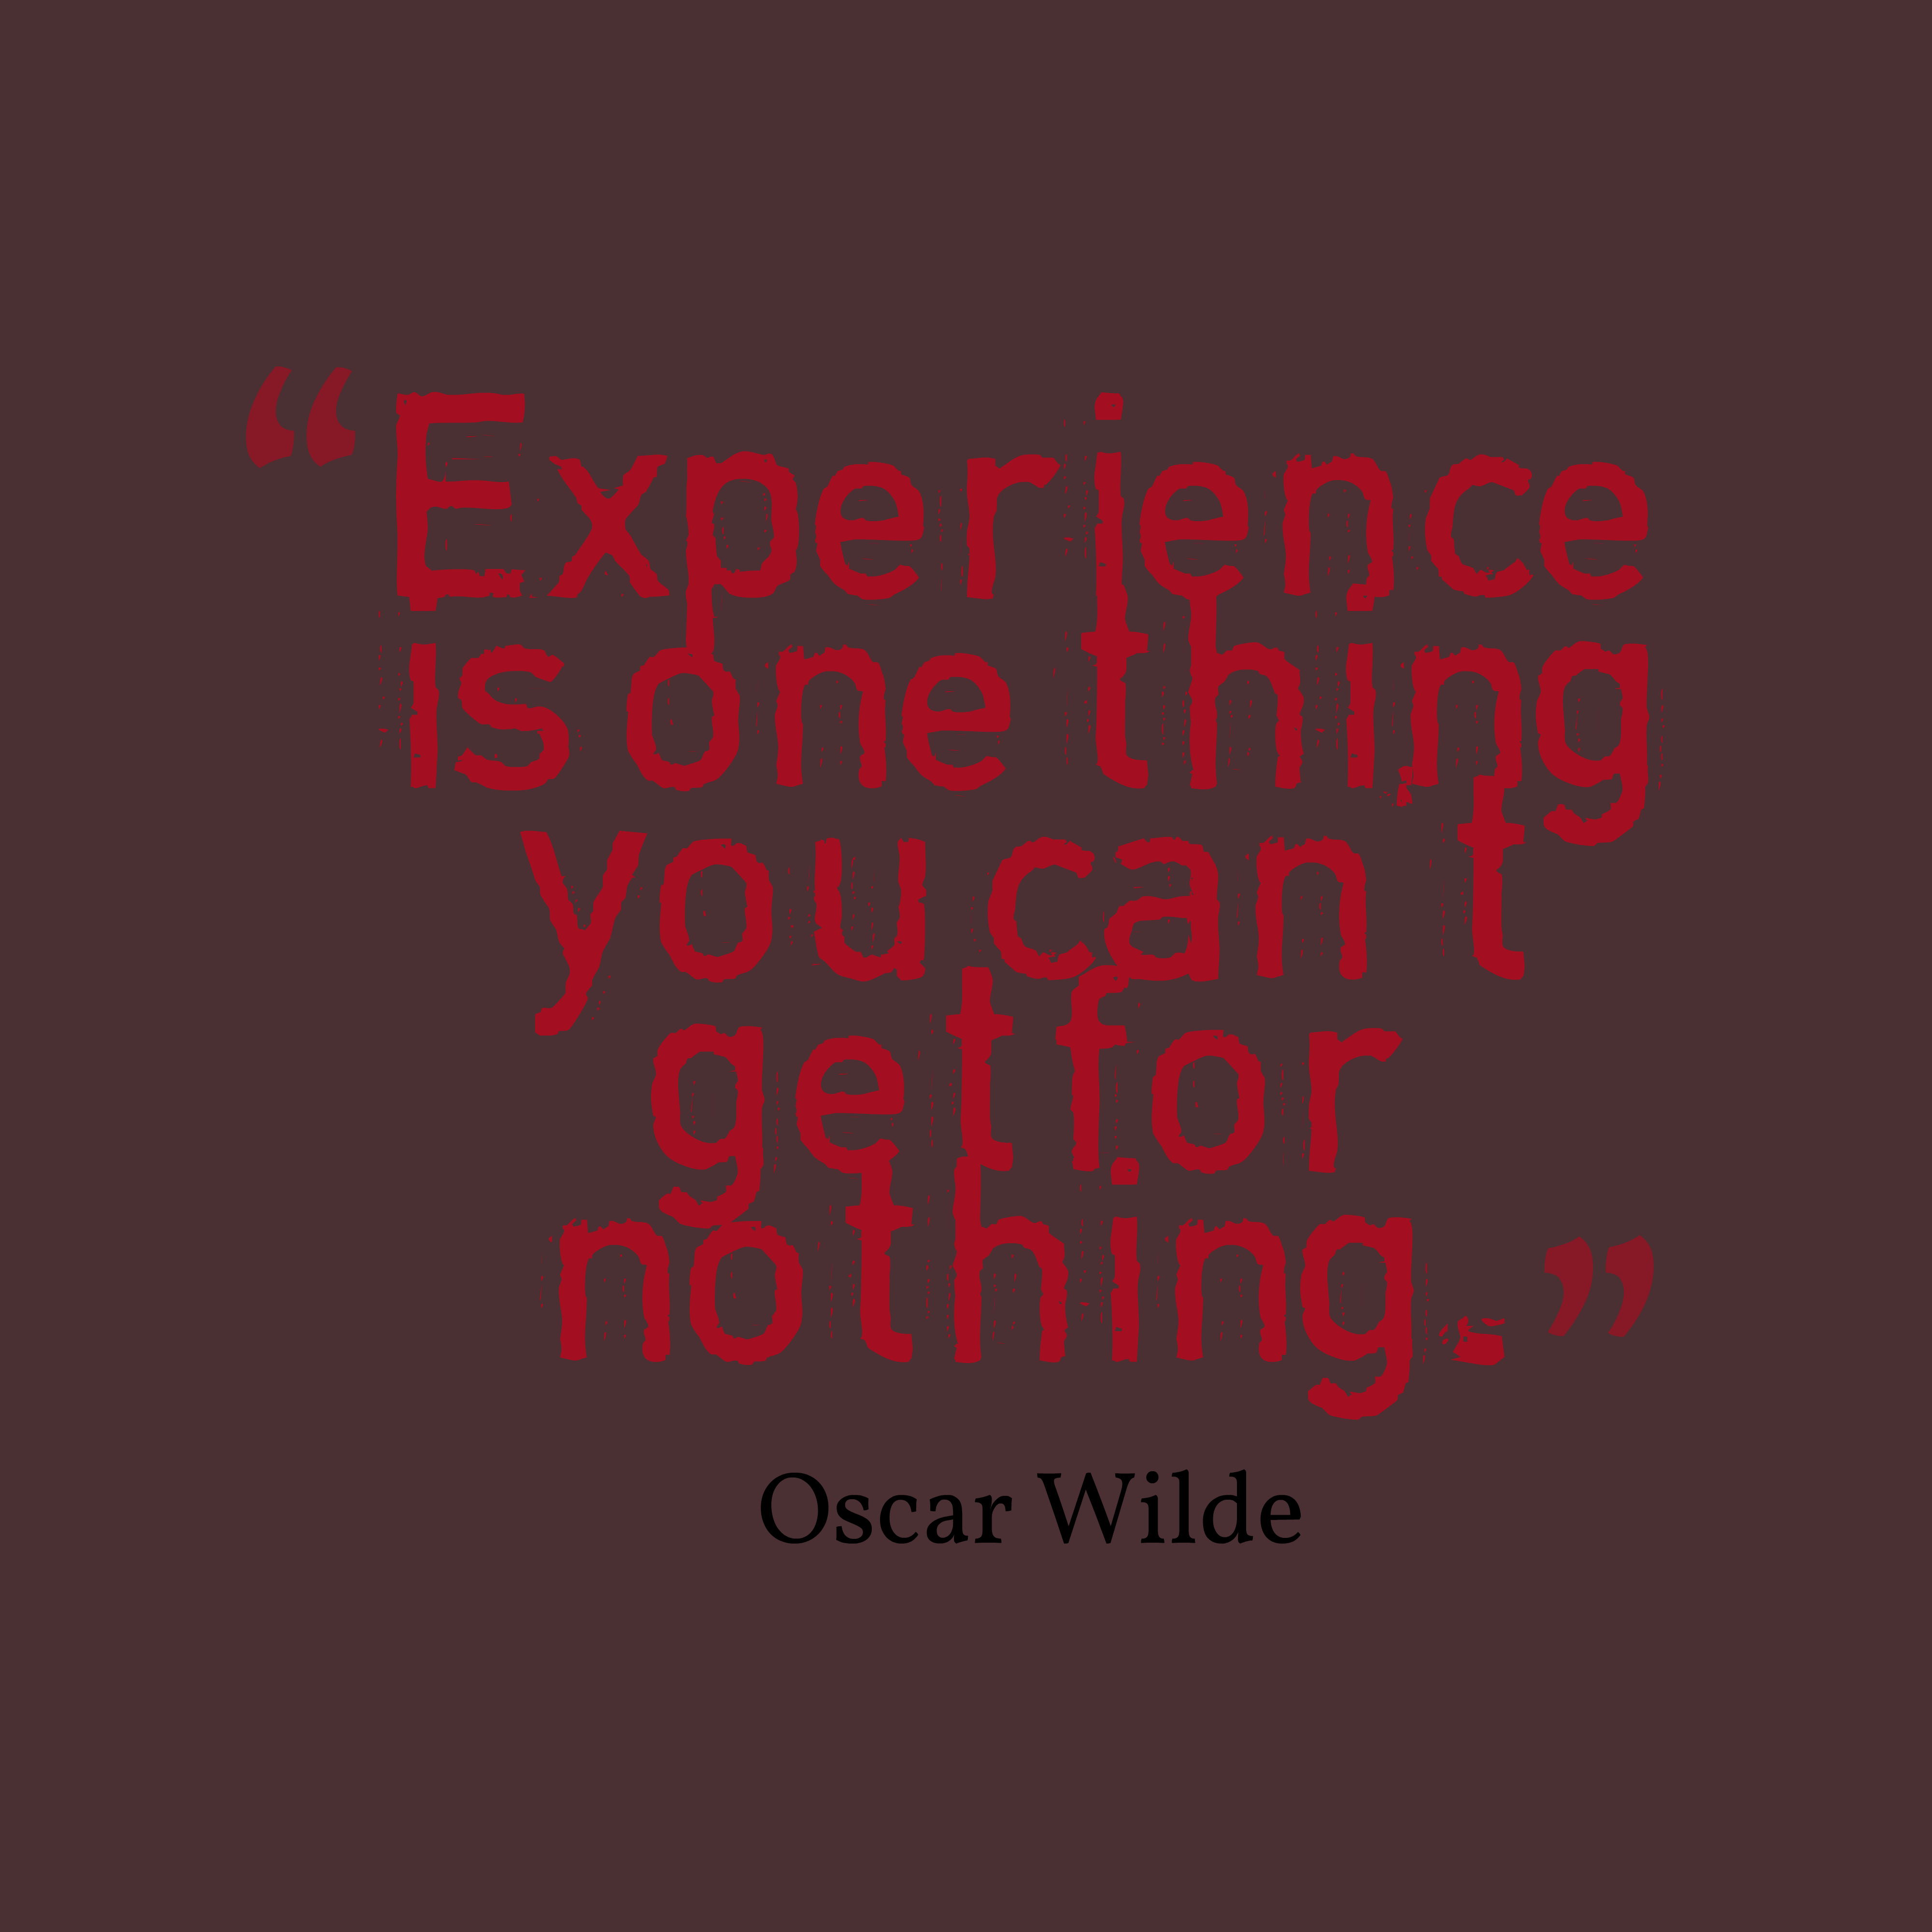 Oscar Wilde Quote About Experience